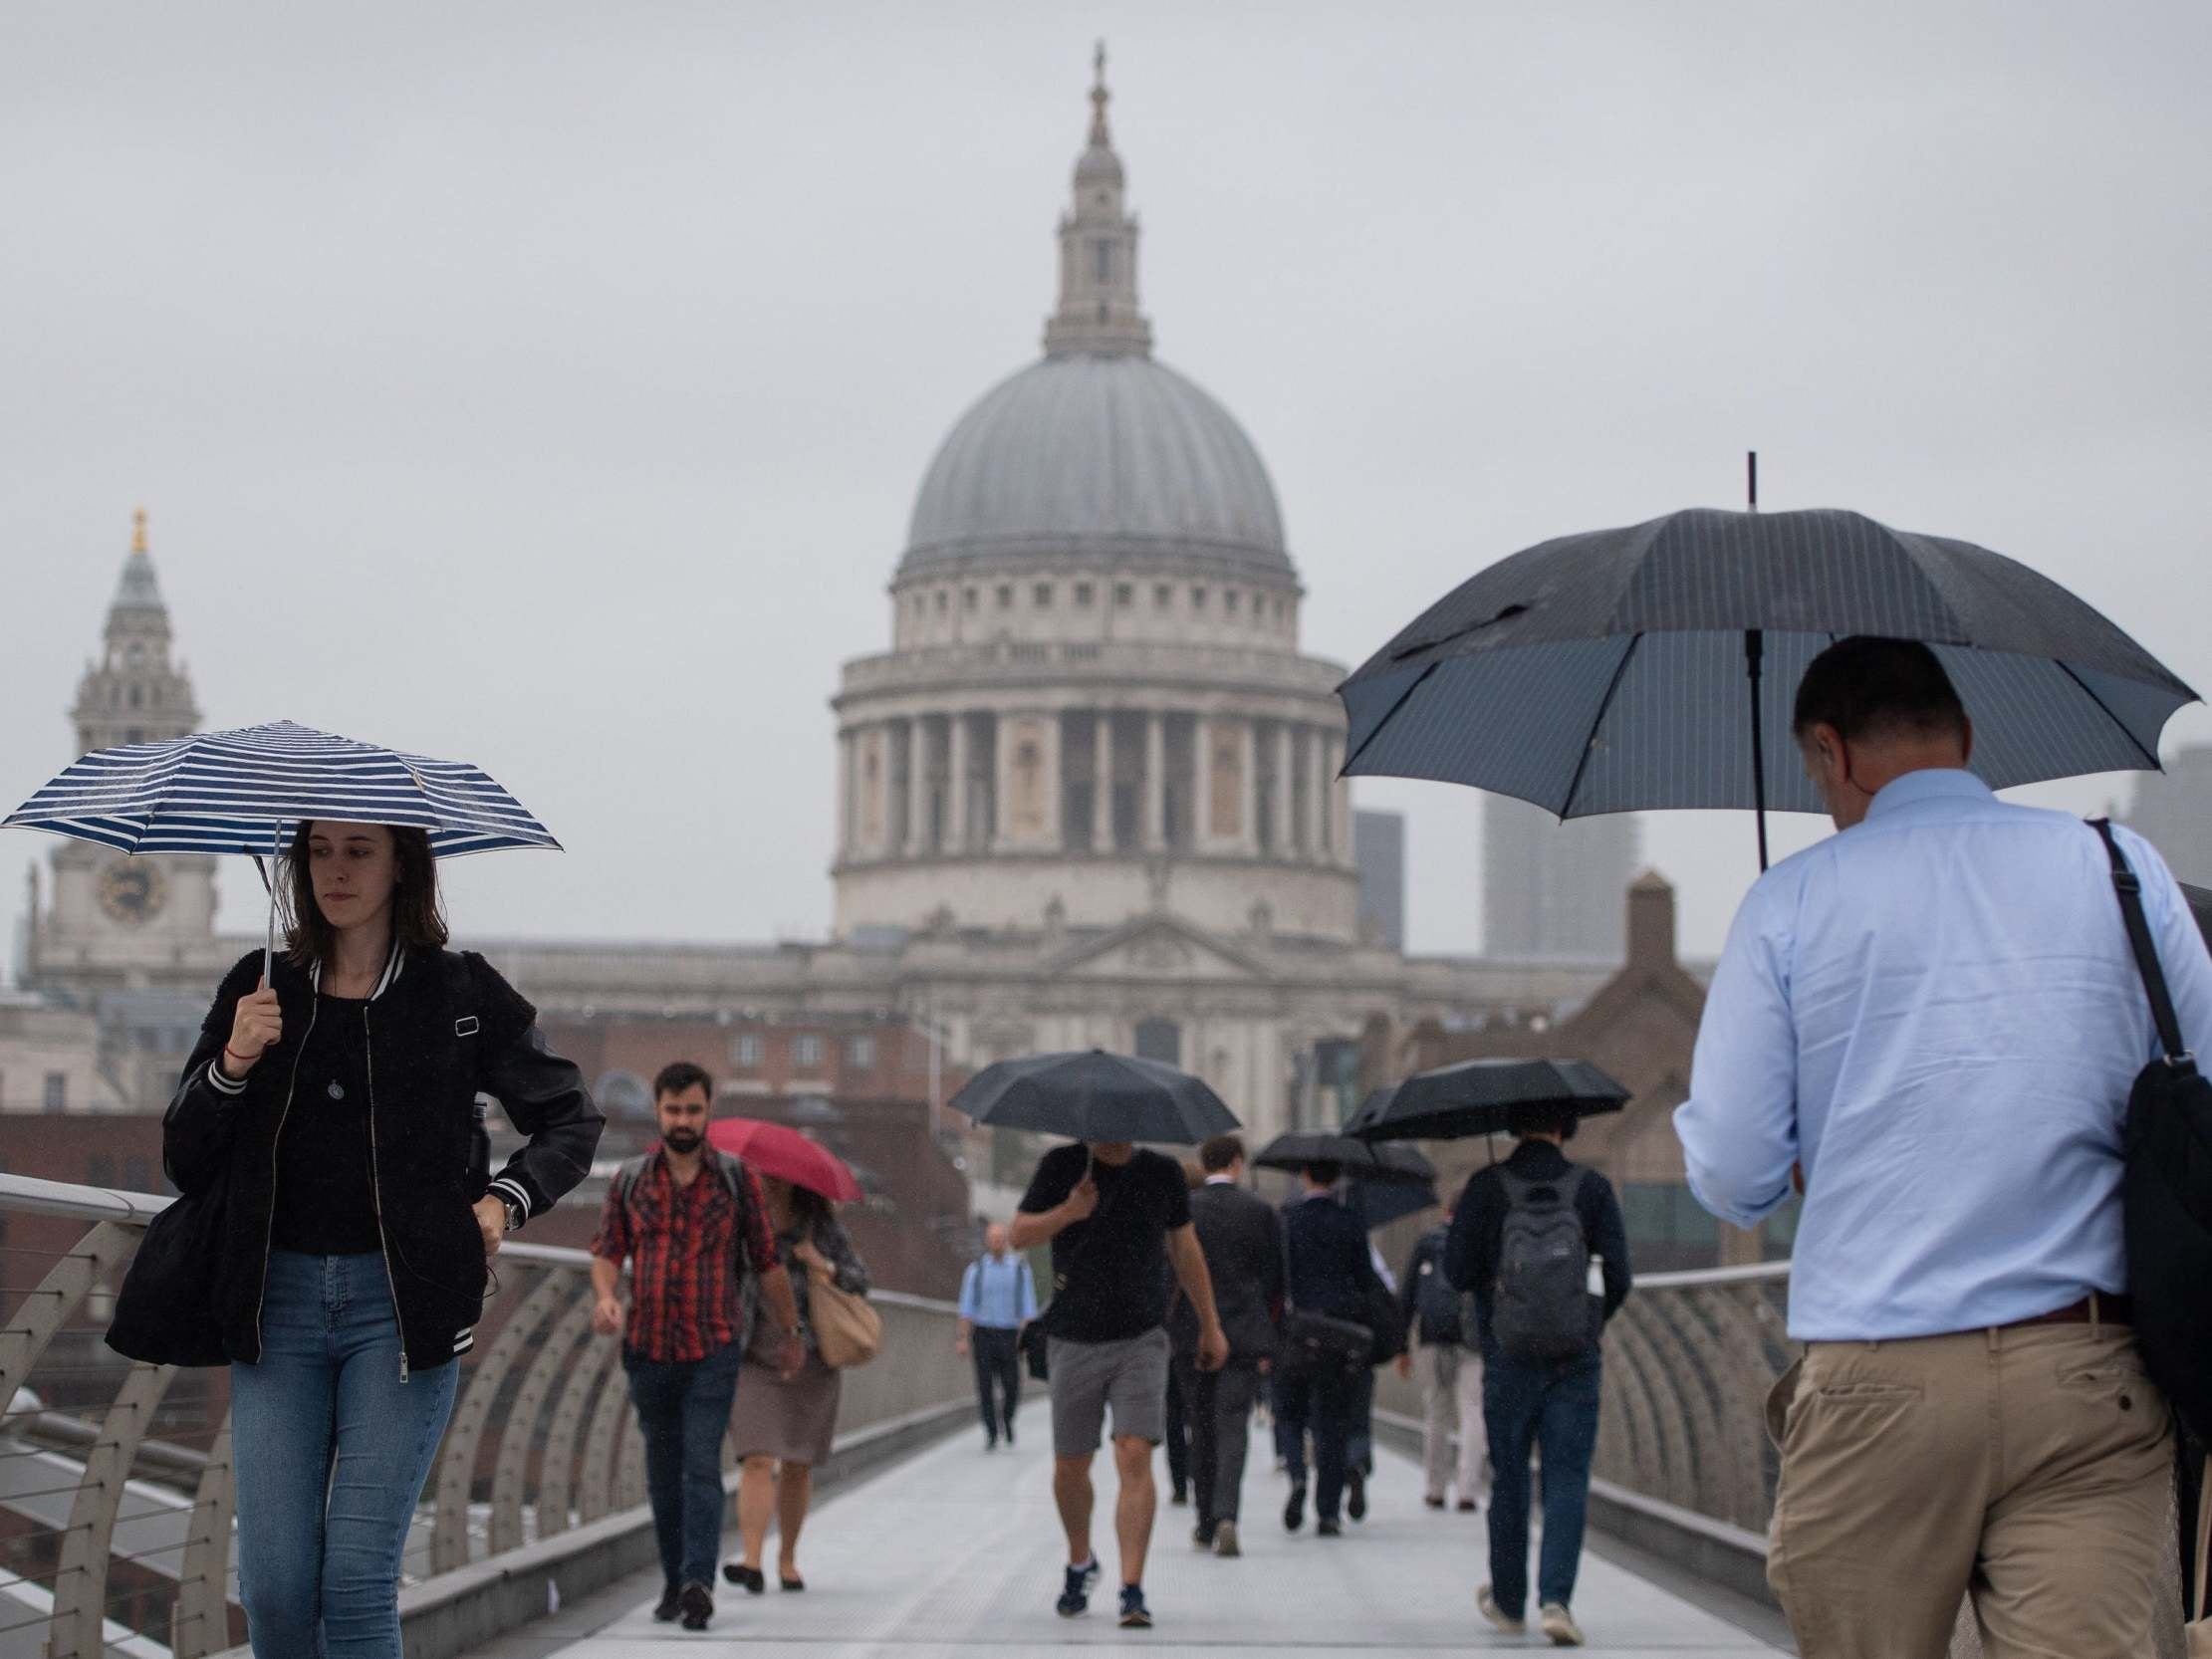 UK weather forecast: Gales and thunderstorms on way this weekend, warns Met Office